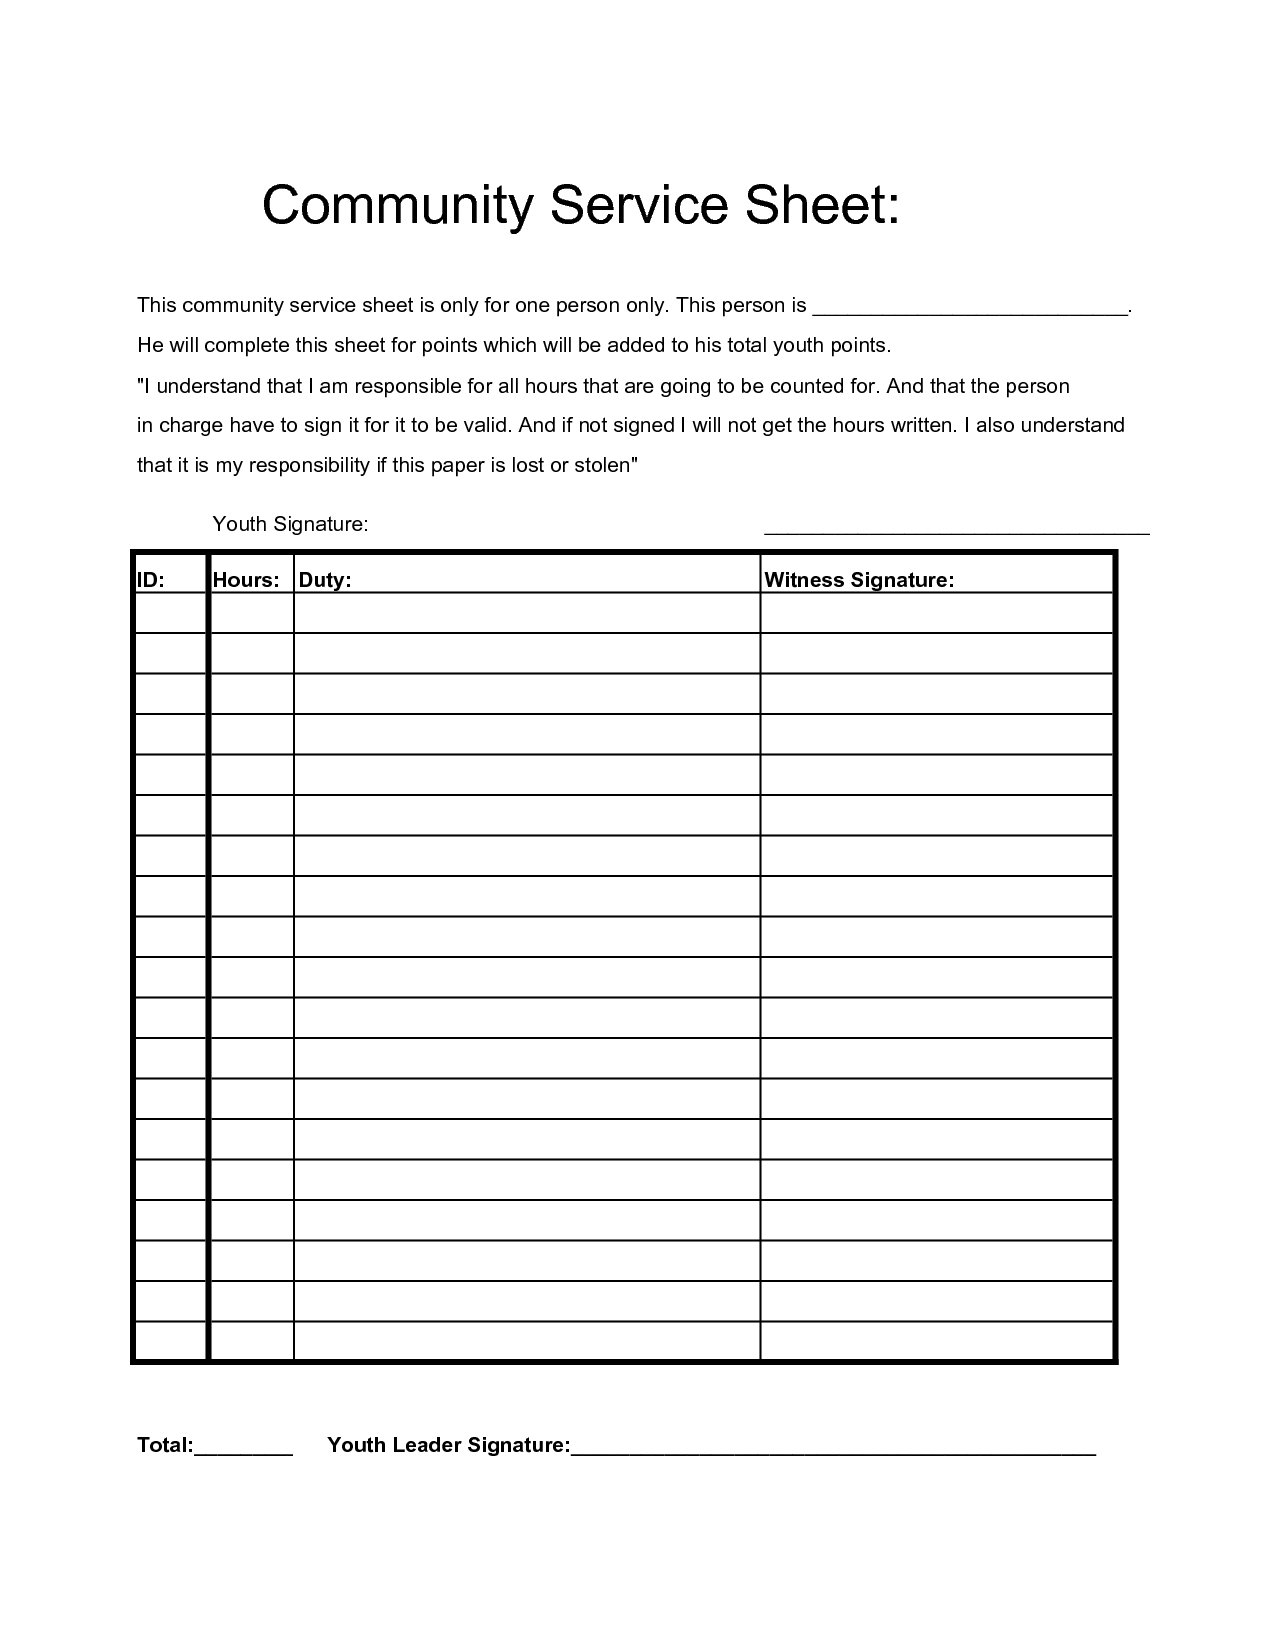 Community Service Hours Sheet